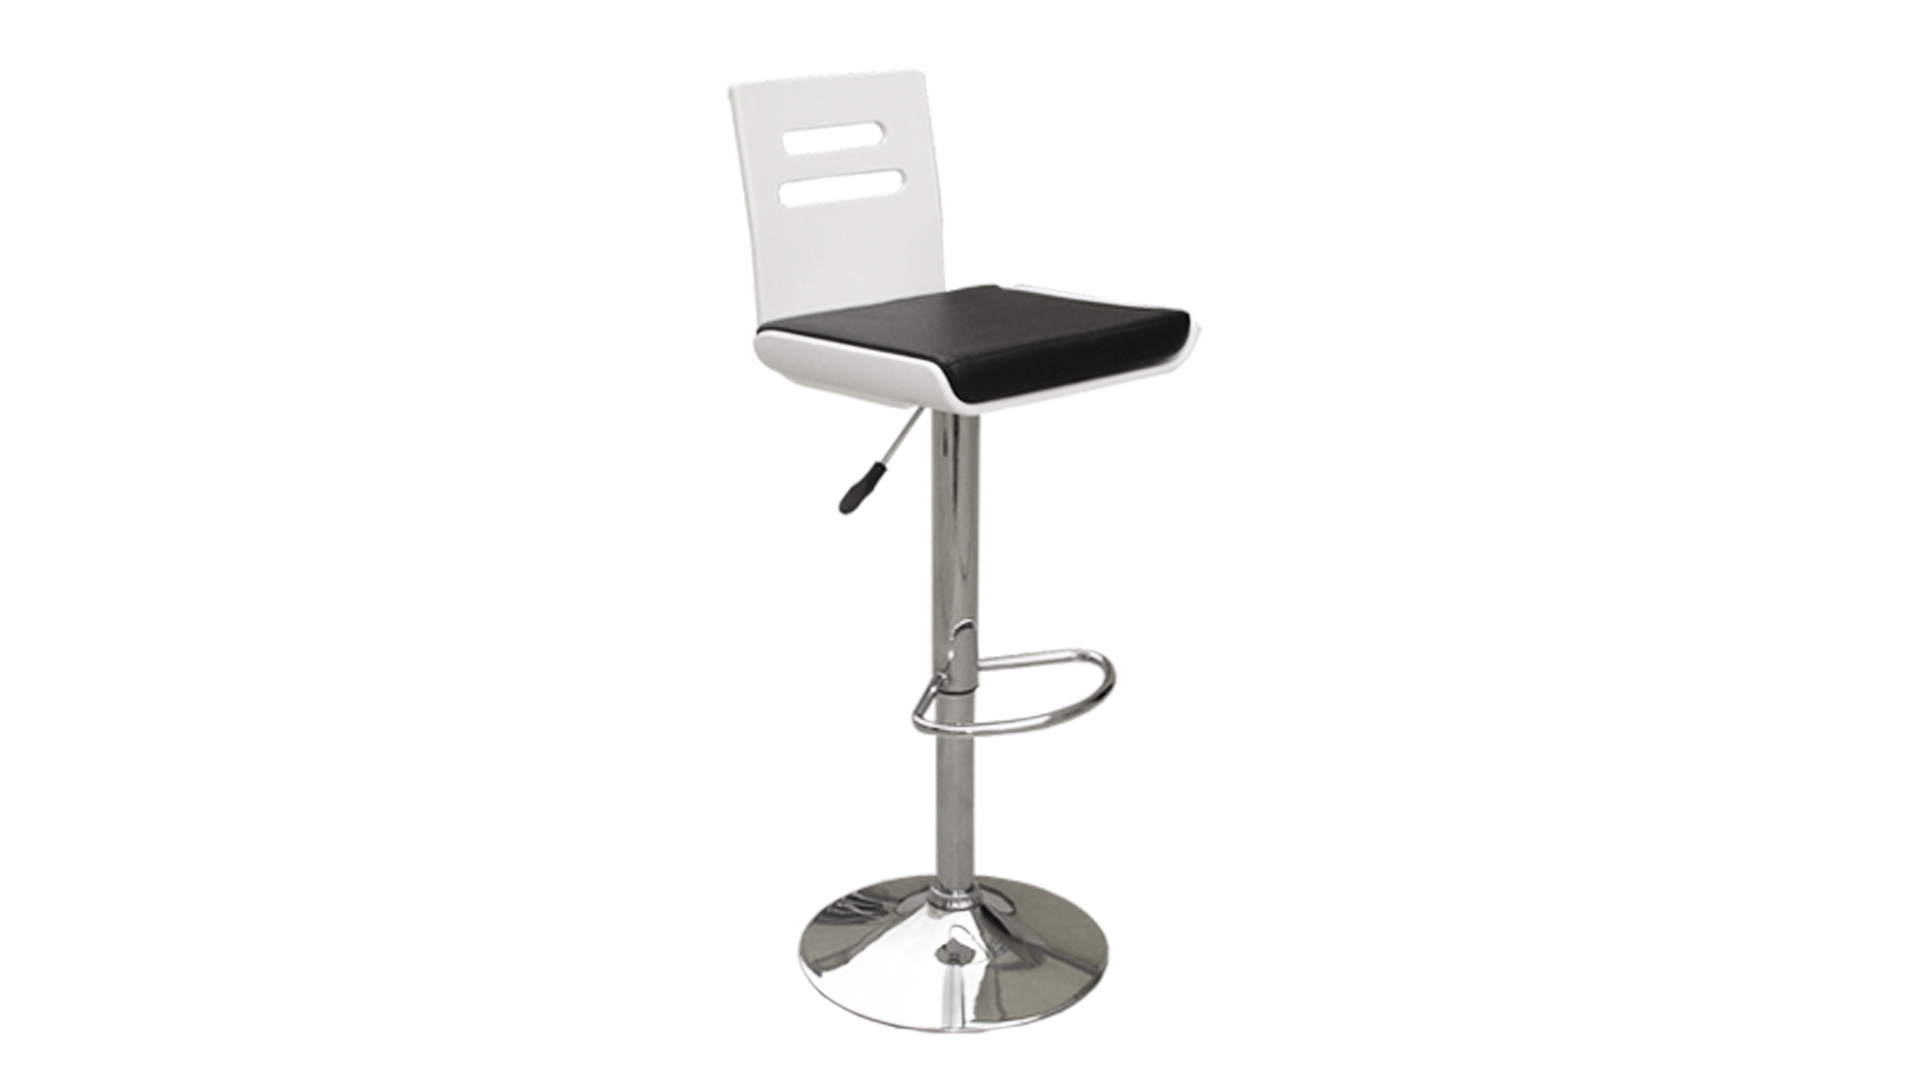 tabouret de bar assise 63 cm tabouret de bar h 63 cm axel. Black Bedroom Furniture Sets. Home Design Ideas